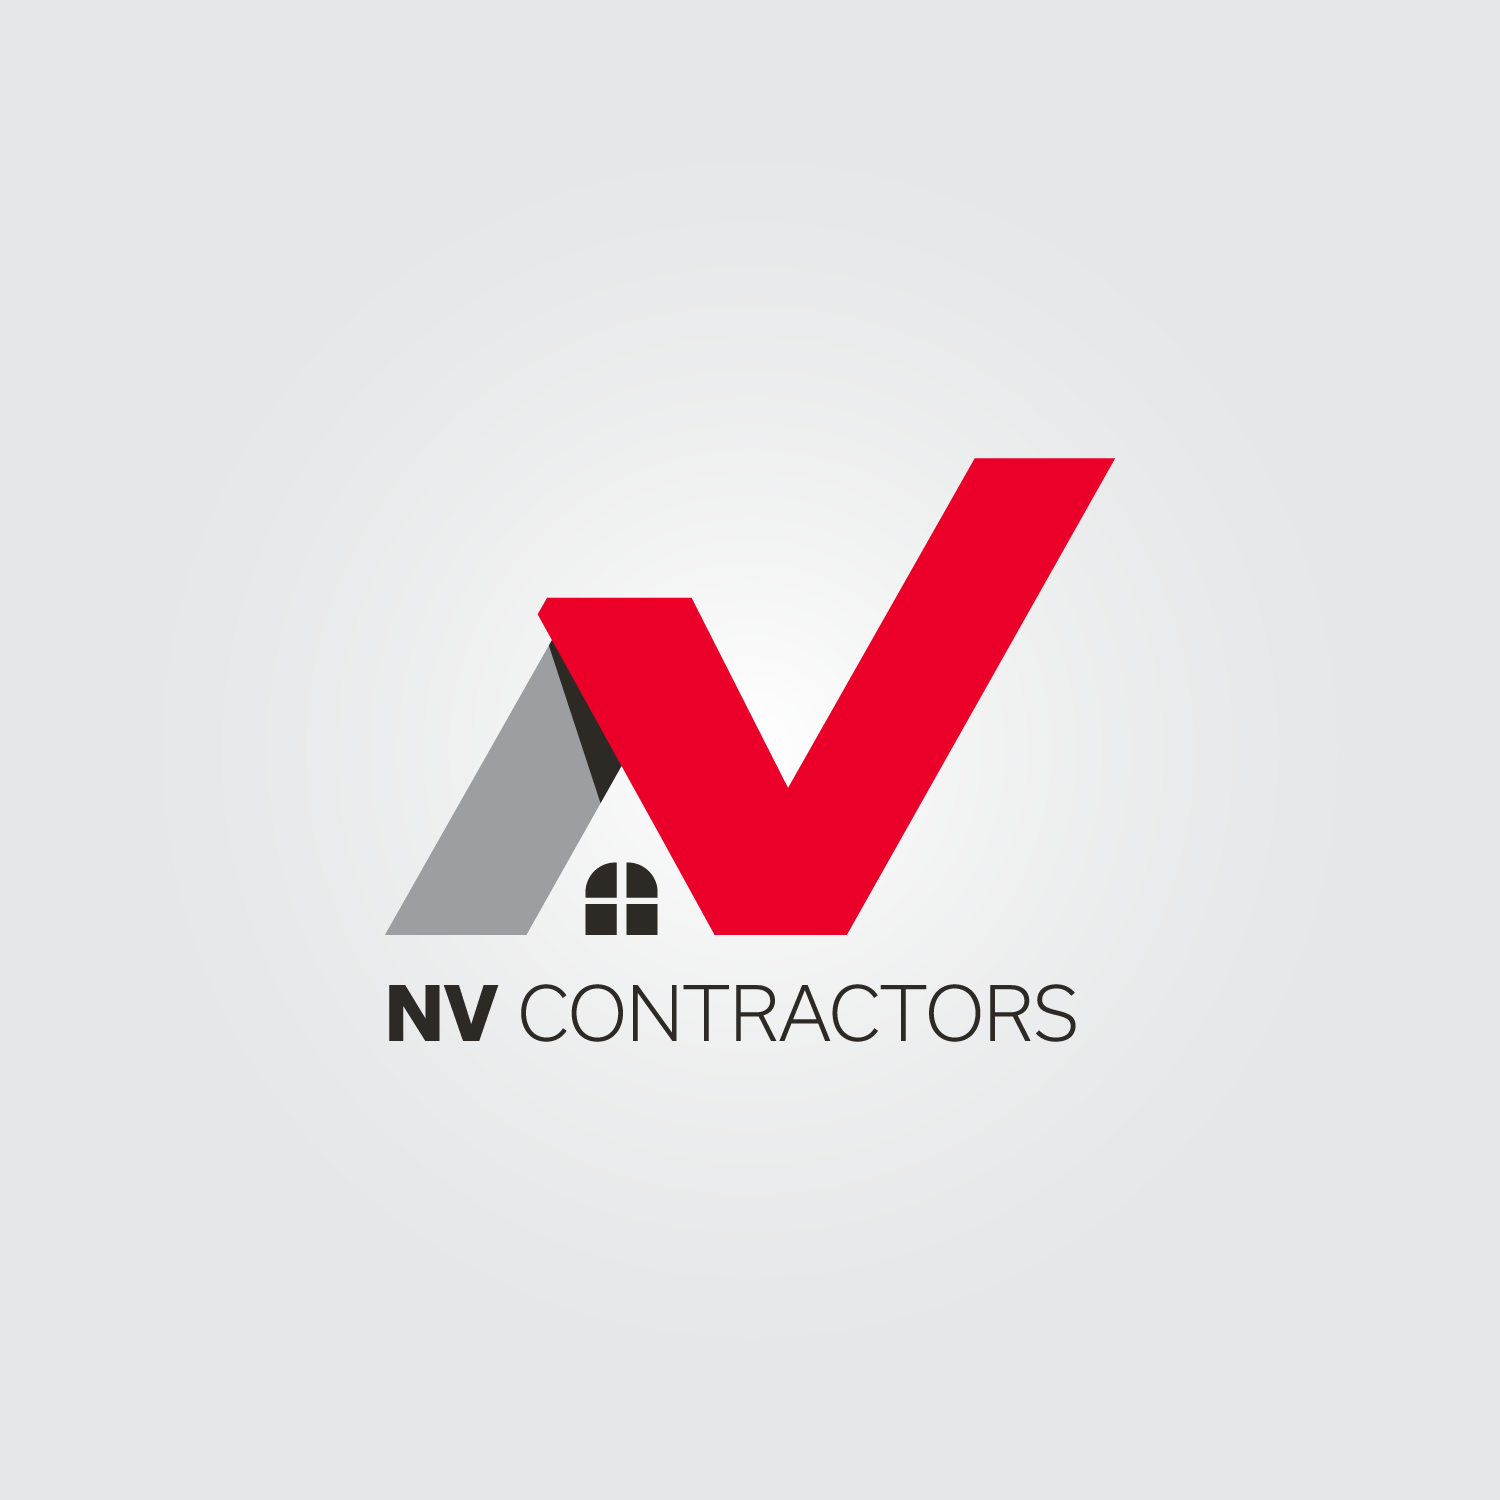 a concrete contractor logo